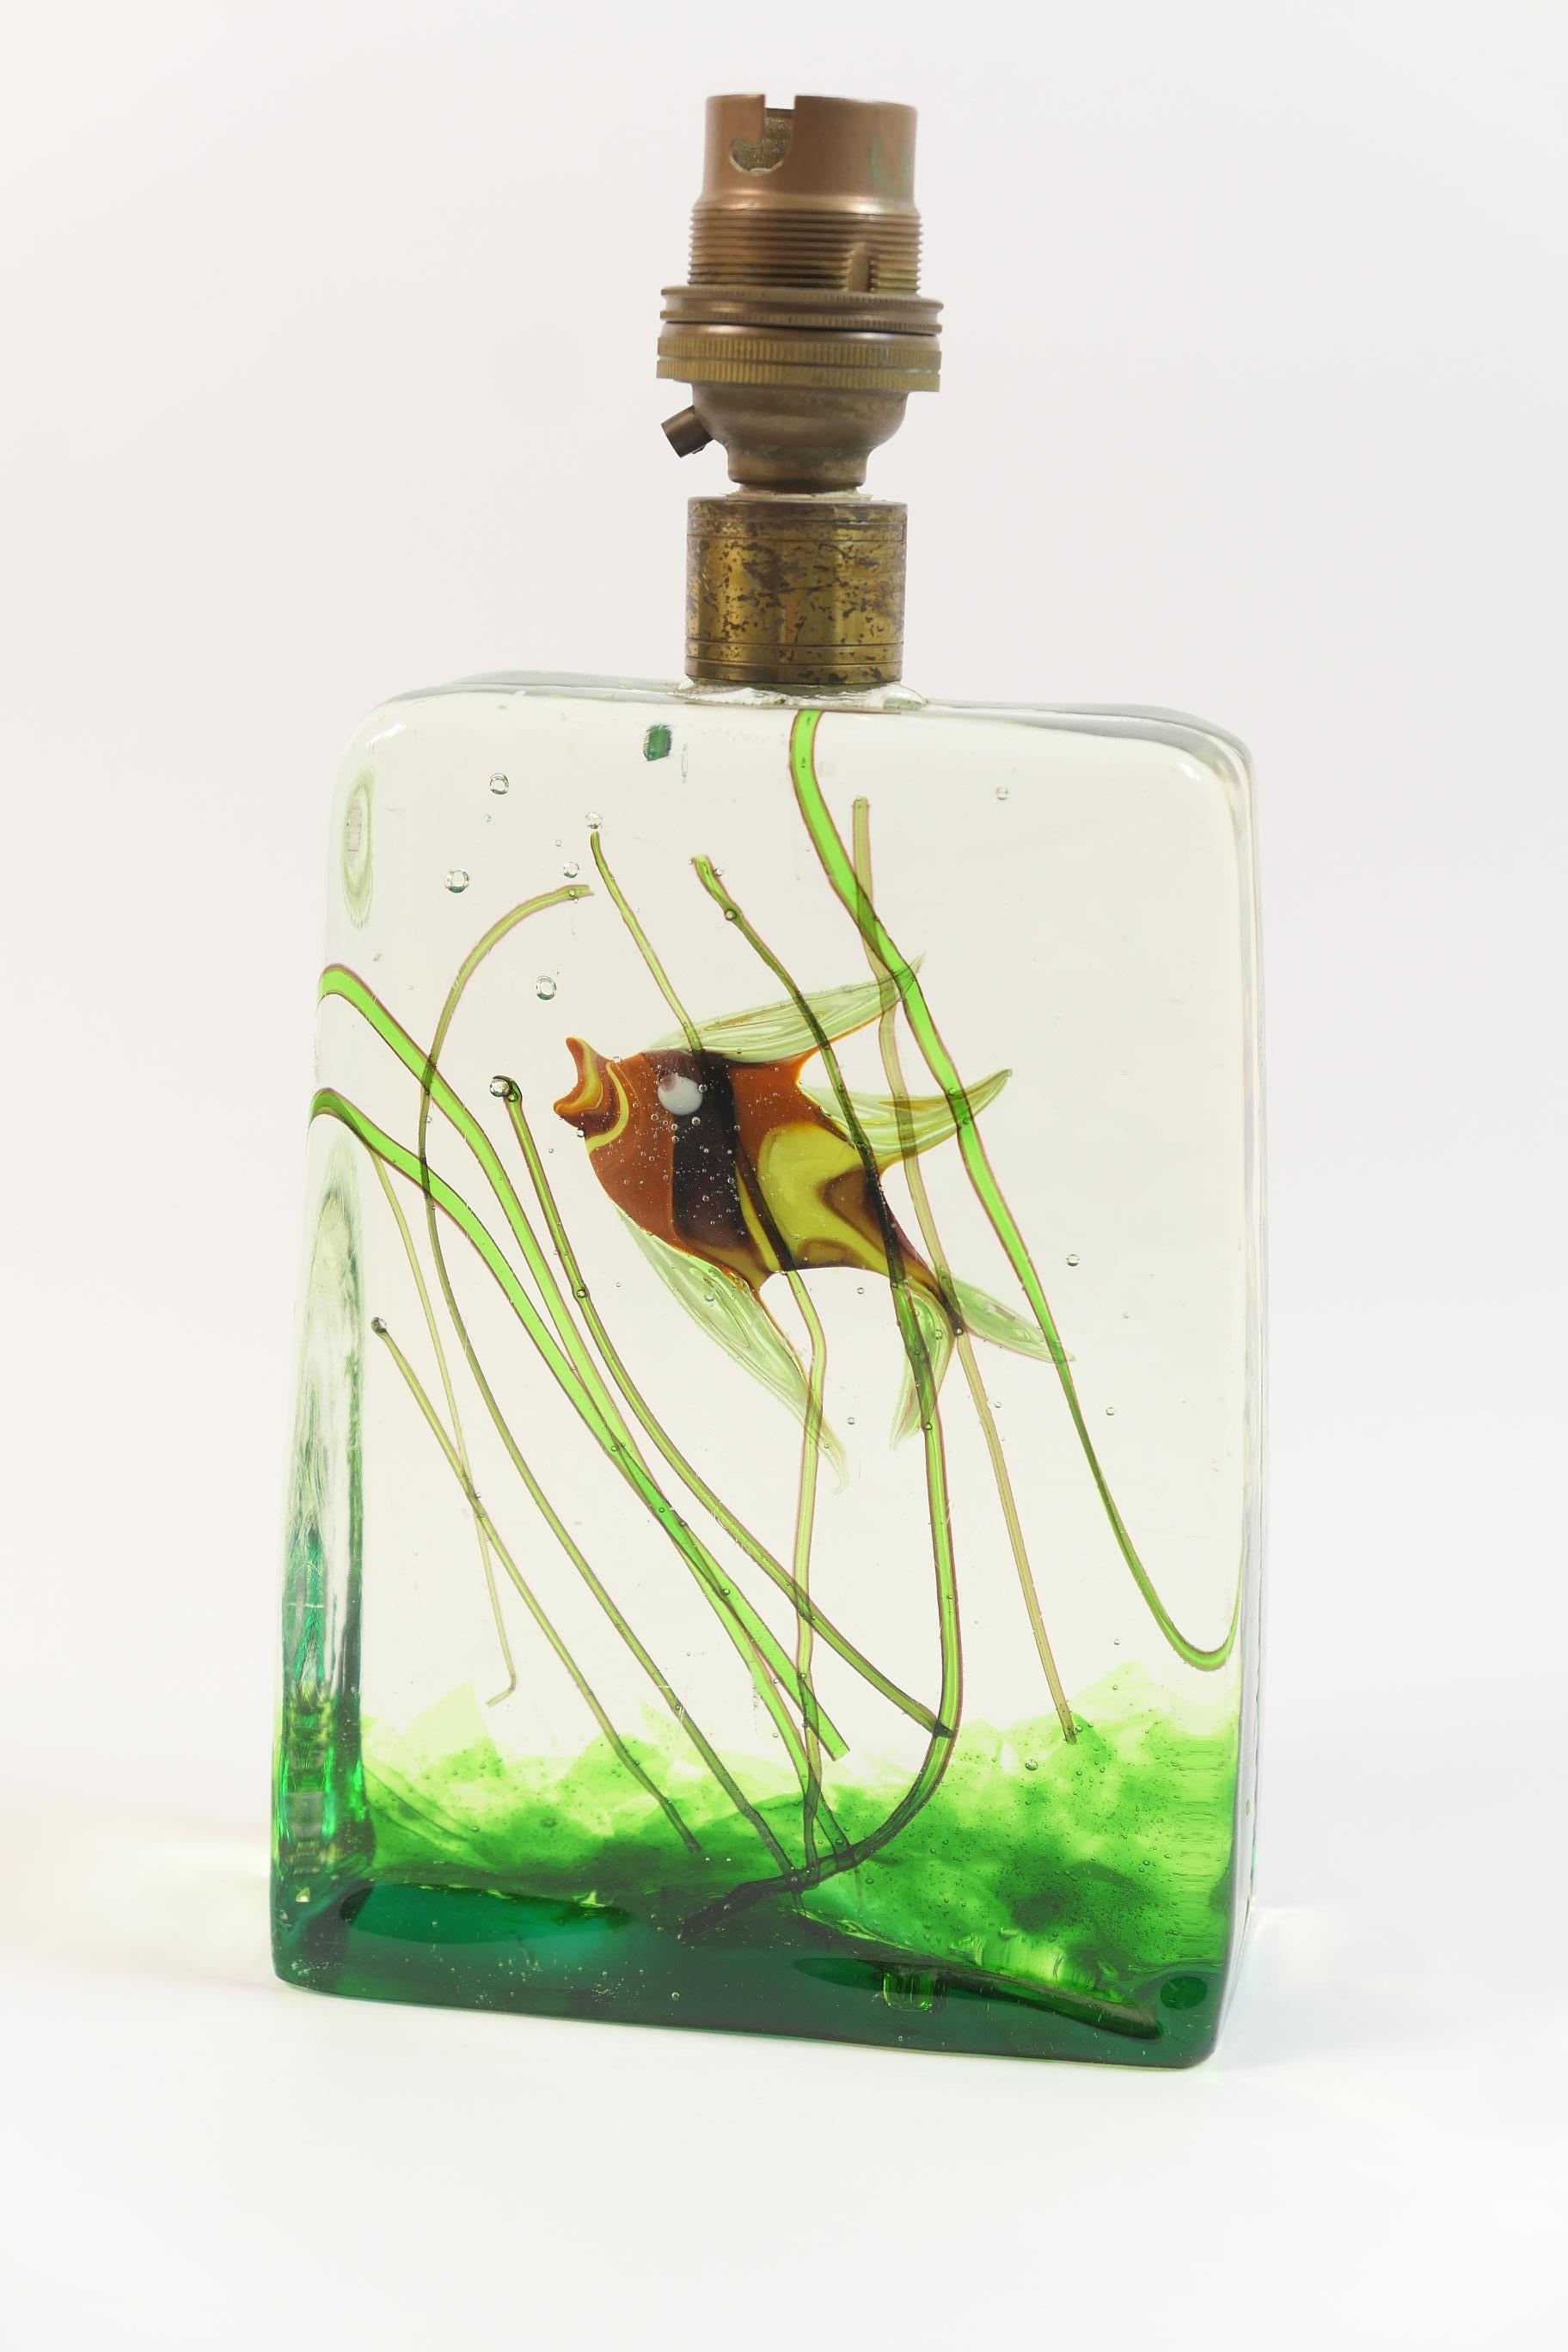 Lot 21 - Murano glass aquarium table lamp base, slab form encasing an angel fish in colours swimming amidst